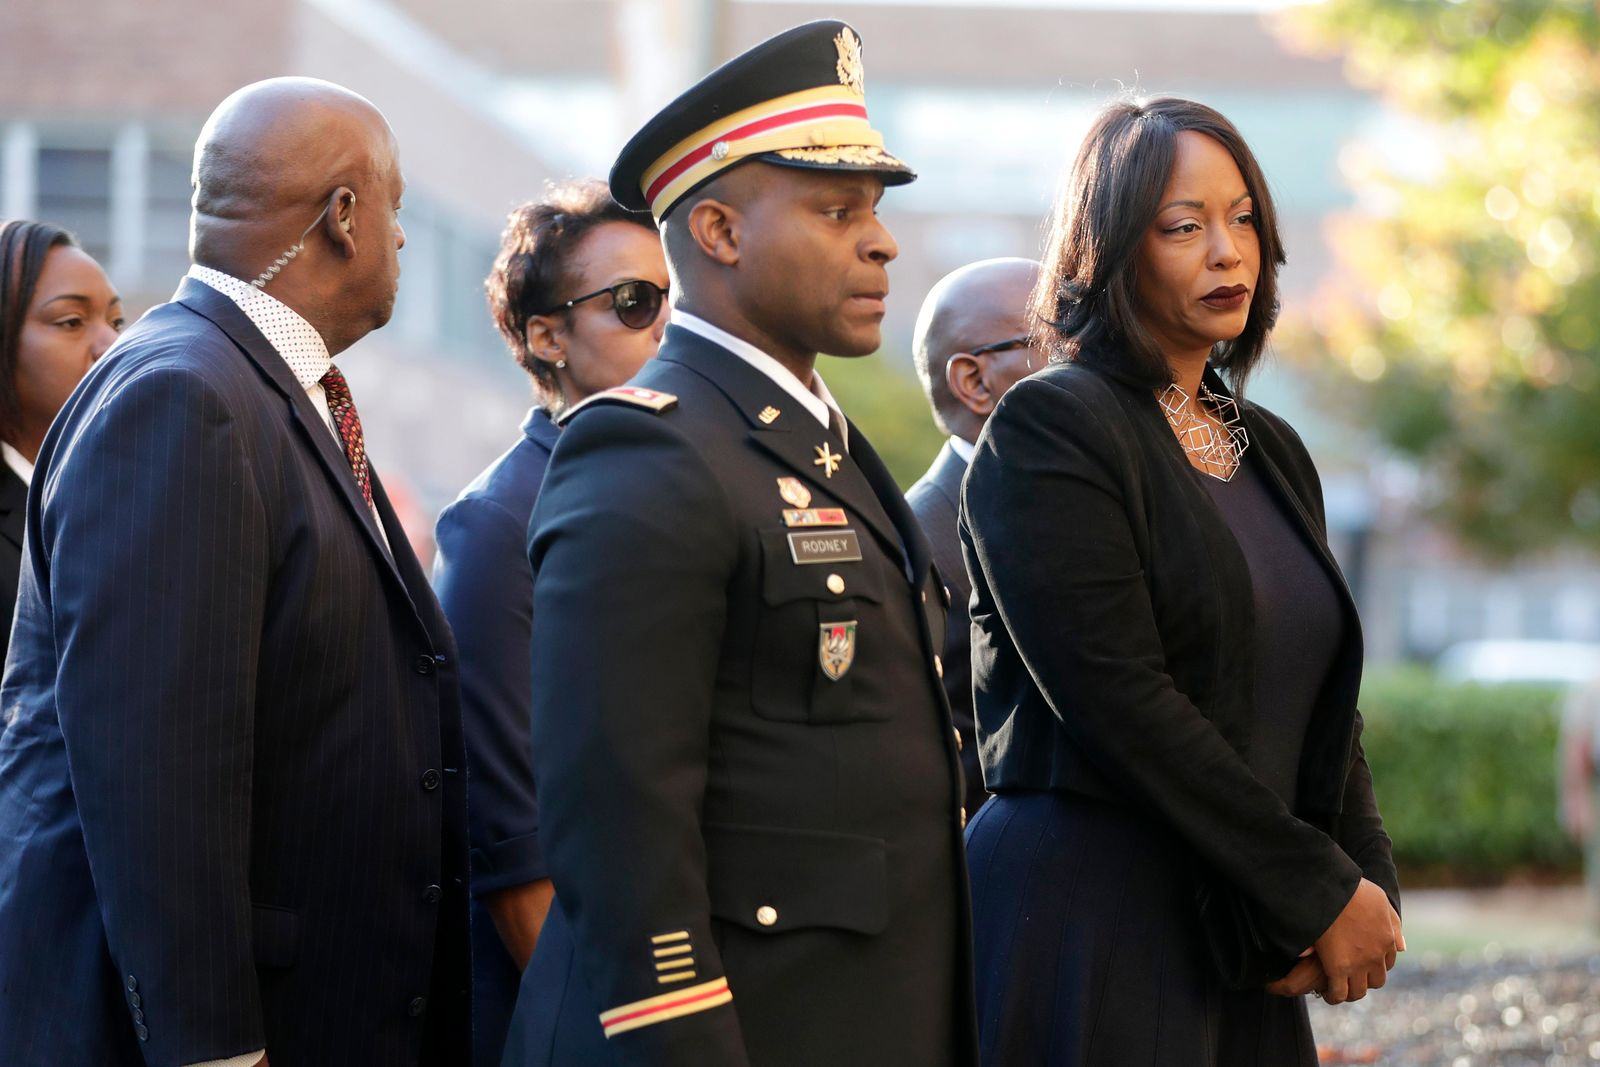 Mourners, including Maya Rockeymoore, right, widow of U.S. Rep. Elijah Cummings follow behind pallbearers walking with the congressman's body while arriving at Morgan State University ahead of a public viewing, Wednesday, Oct. 23, 2019, in Baltimore. (AP Photo/Julio Cortez)